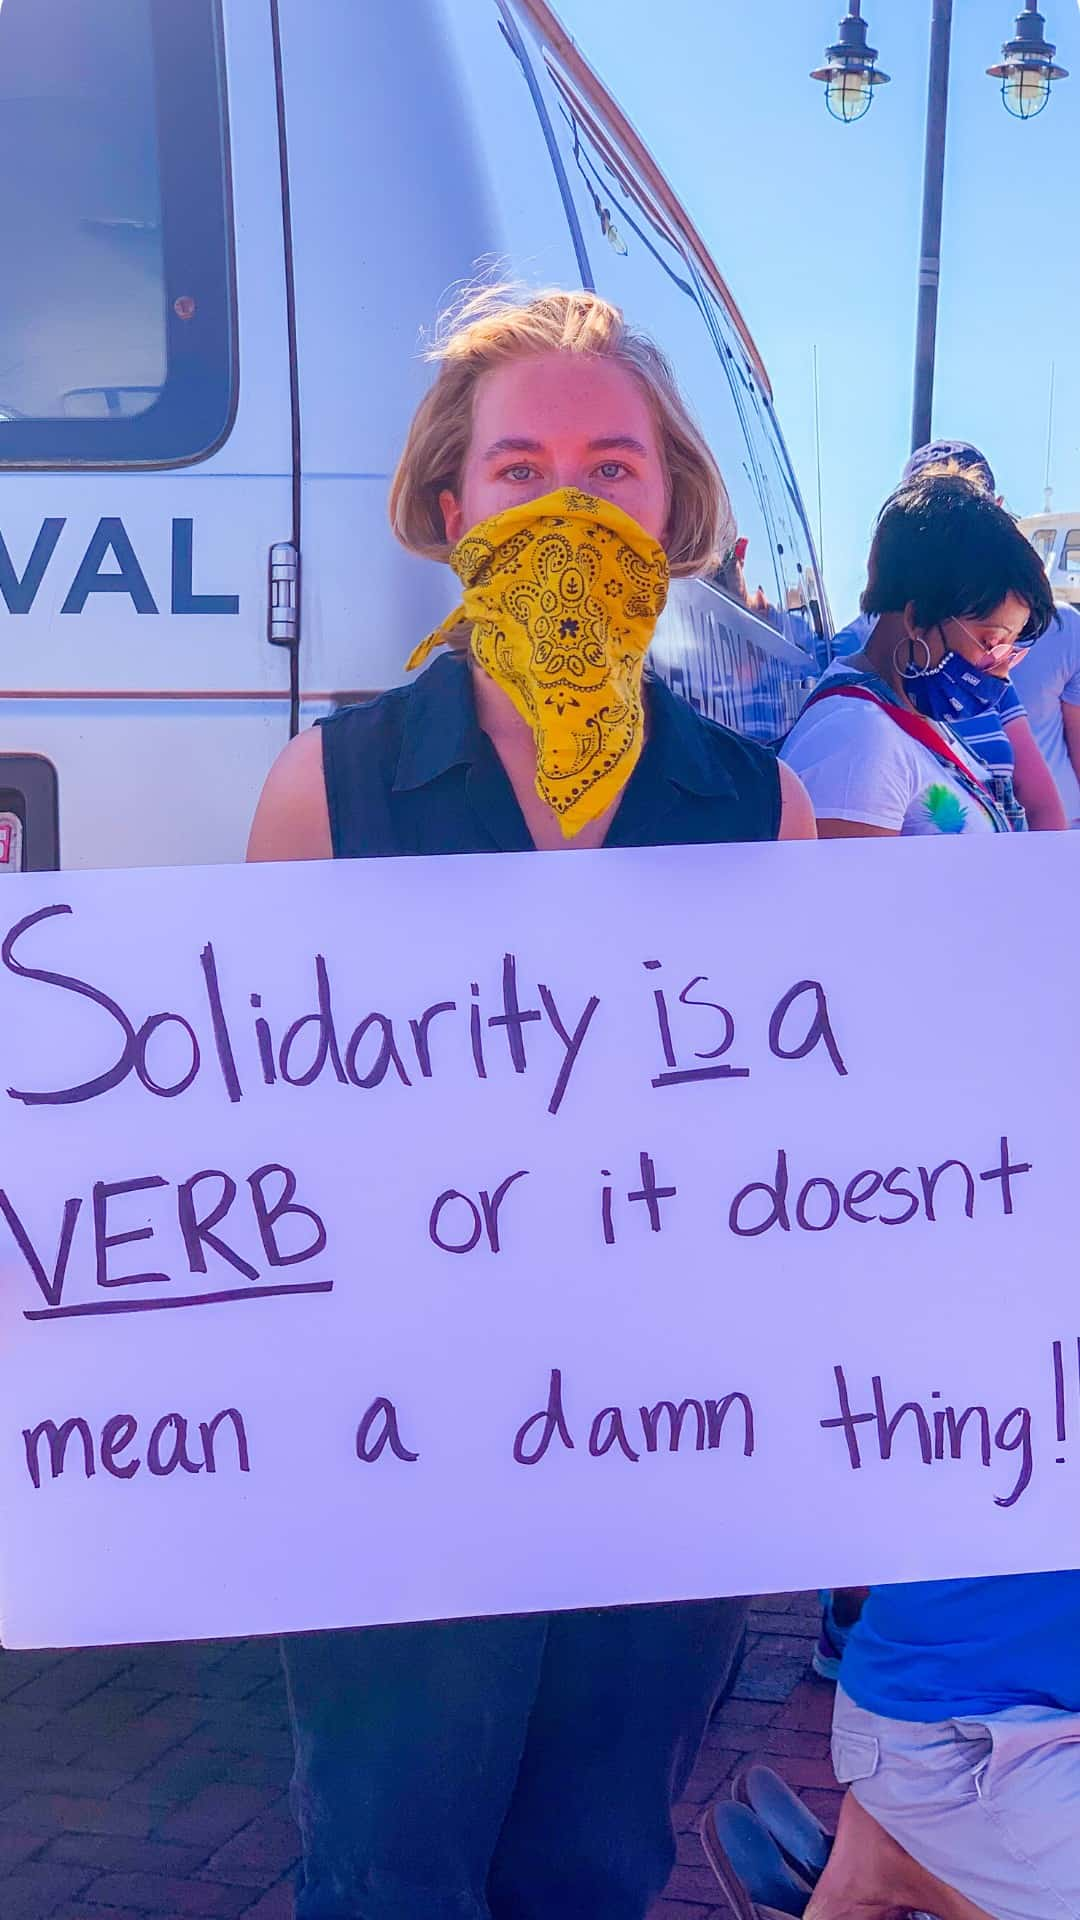 Solidarity is a verb protest sign